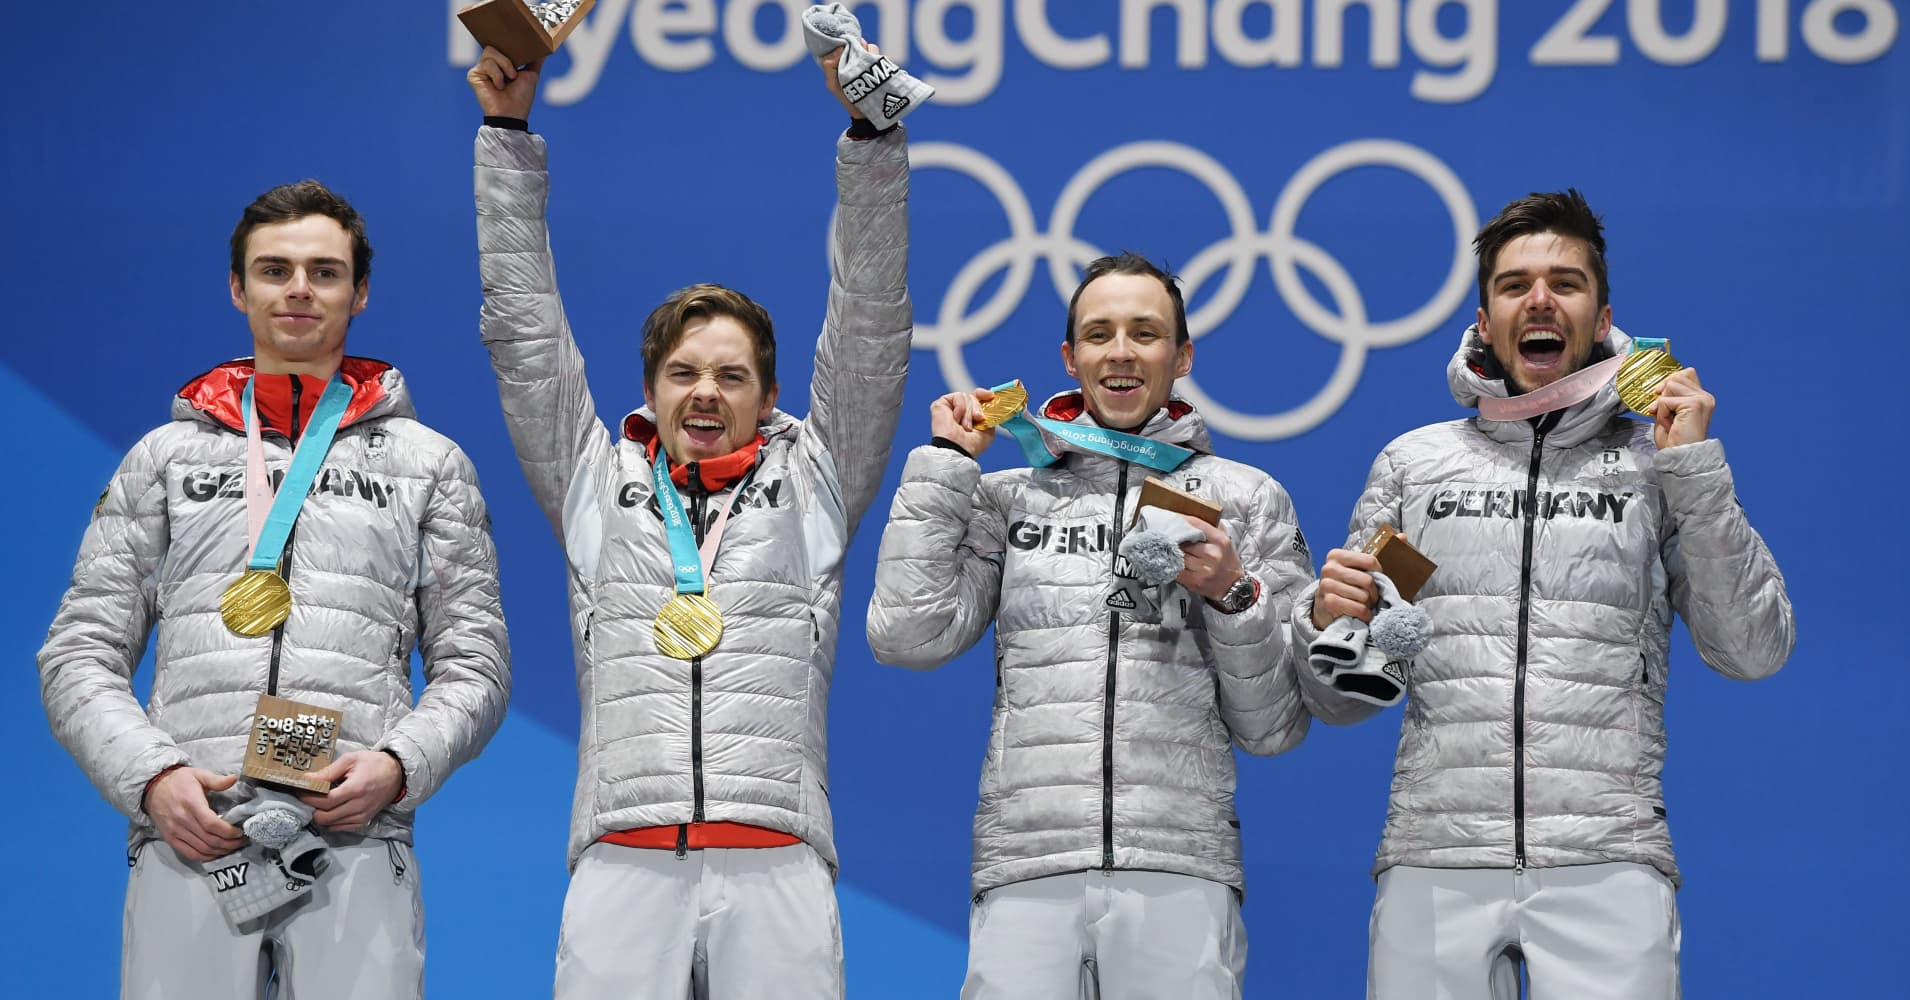 Germany's gold medalists celebrate on the podium during the medal ceremony for the Nordic combined